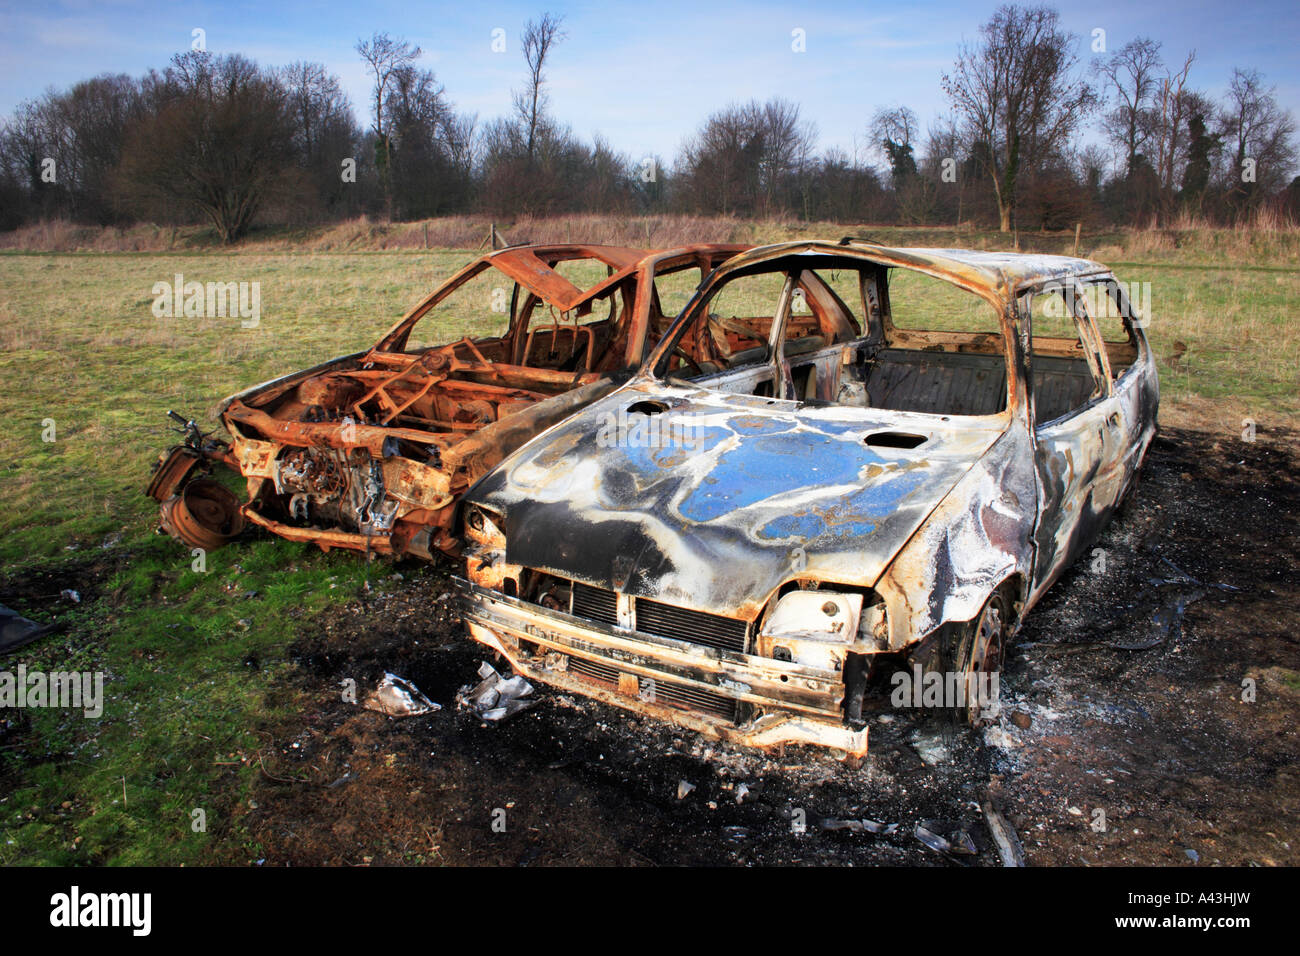 Wrecked Cars Stock Photo - Alamy